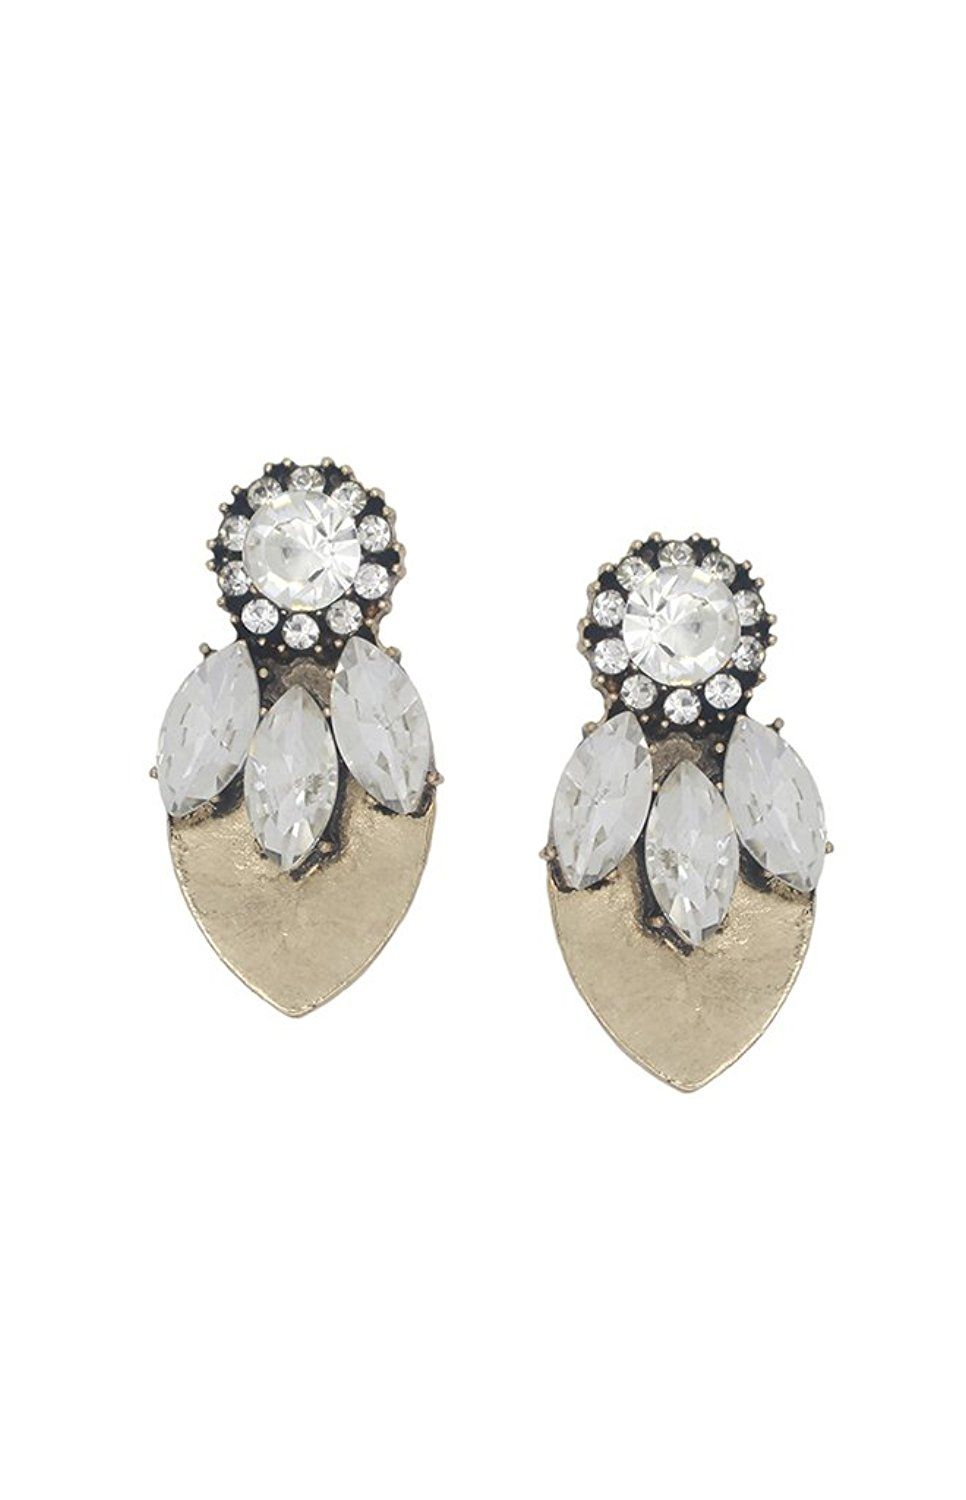 Trendy Golden Leaf With Crystal Stud Earring The Bling S Online At Low Prices In India On Winsant Fastest Ping Website